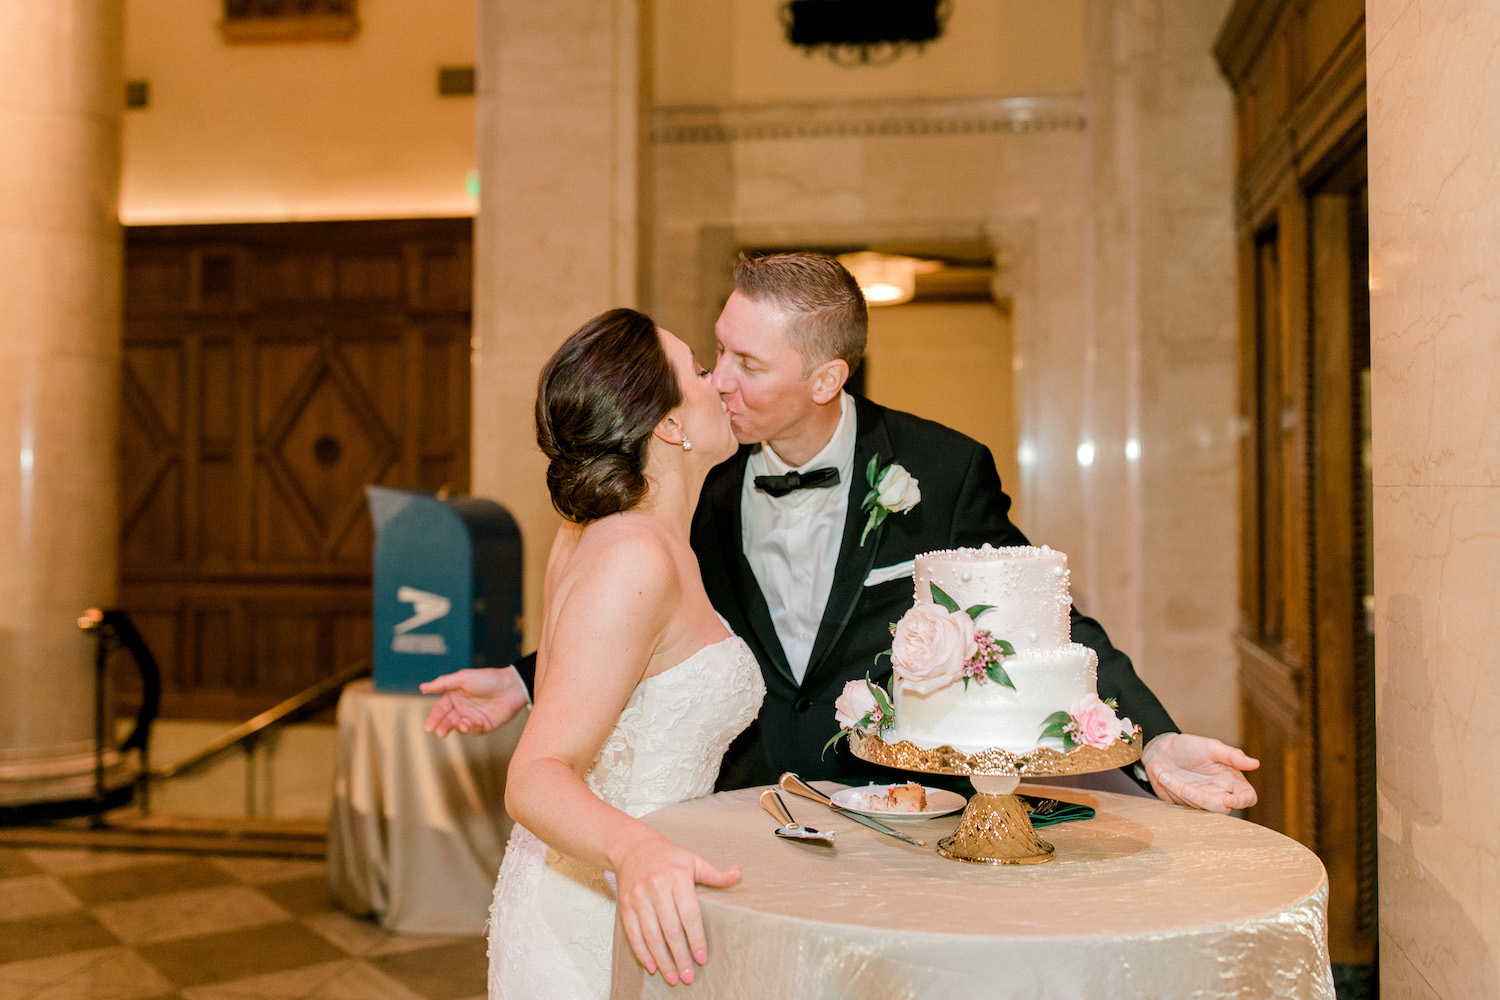 Bride and groom kissing after cake cutting